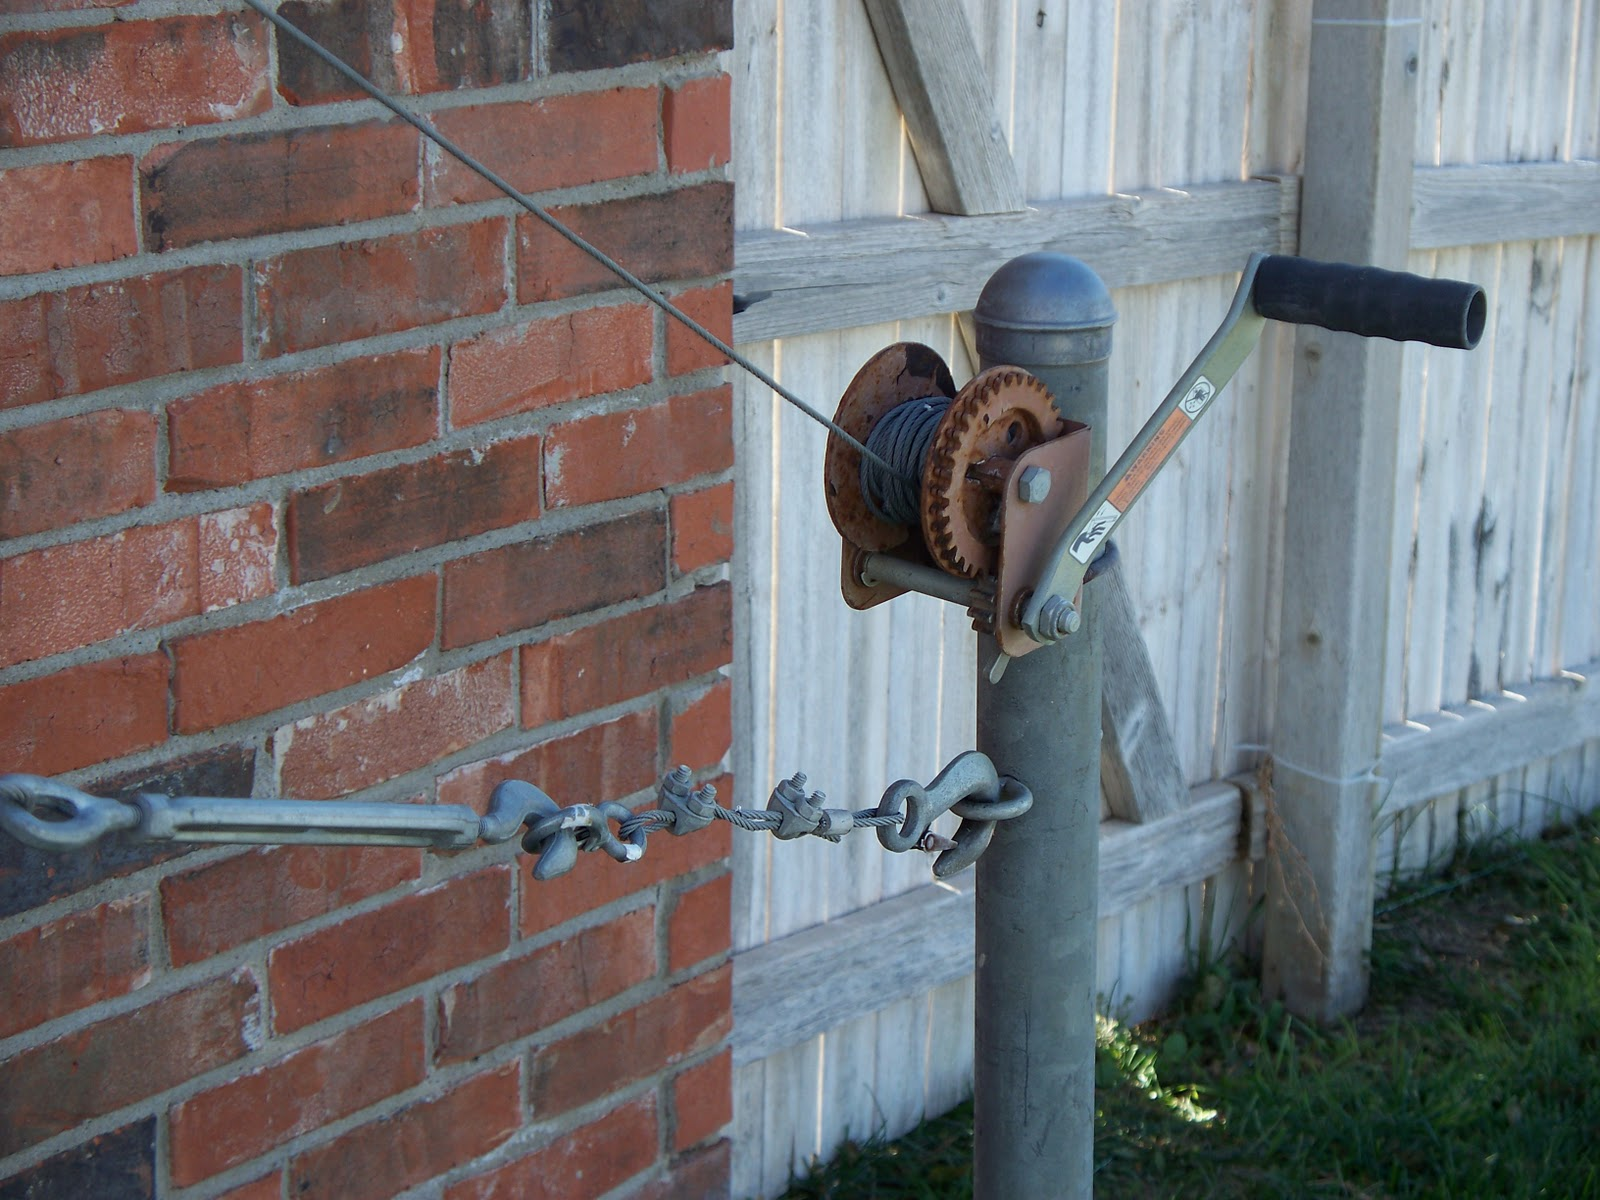 W5zo How I Designed A Winch Pulley System For A Crank